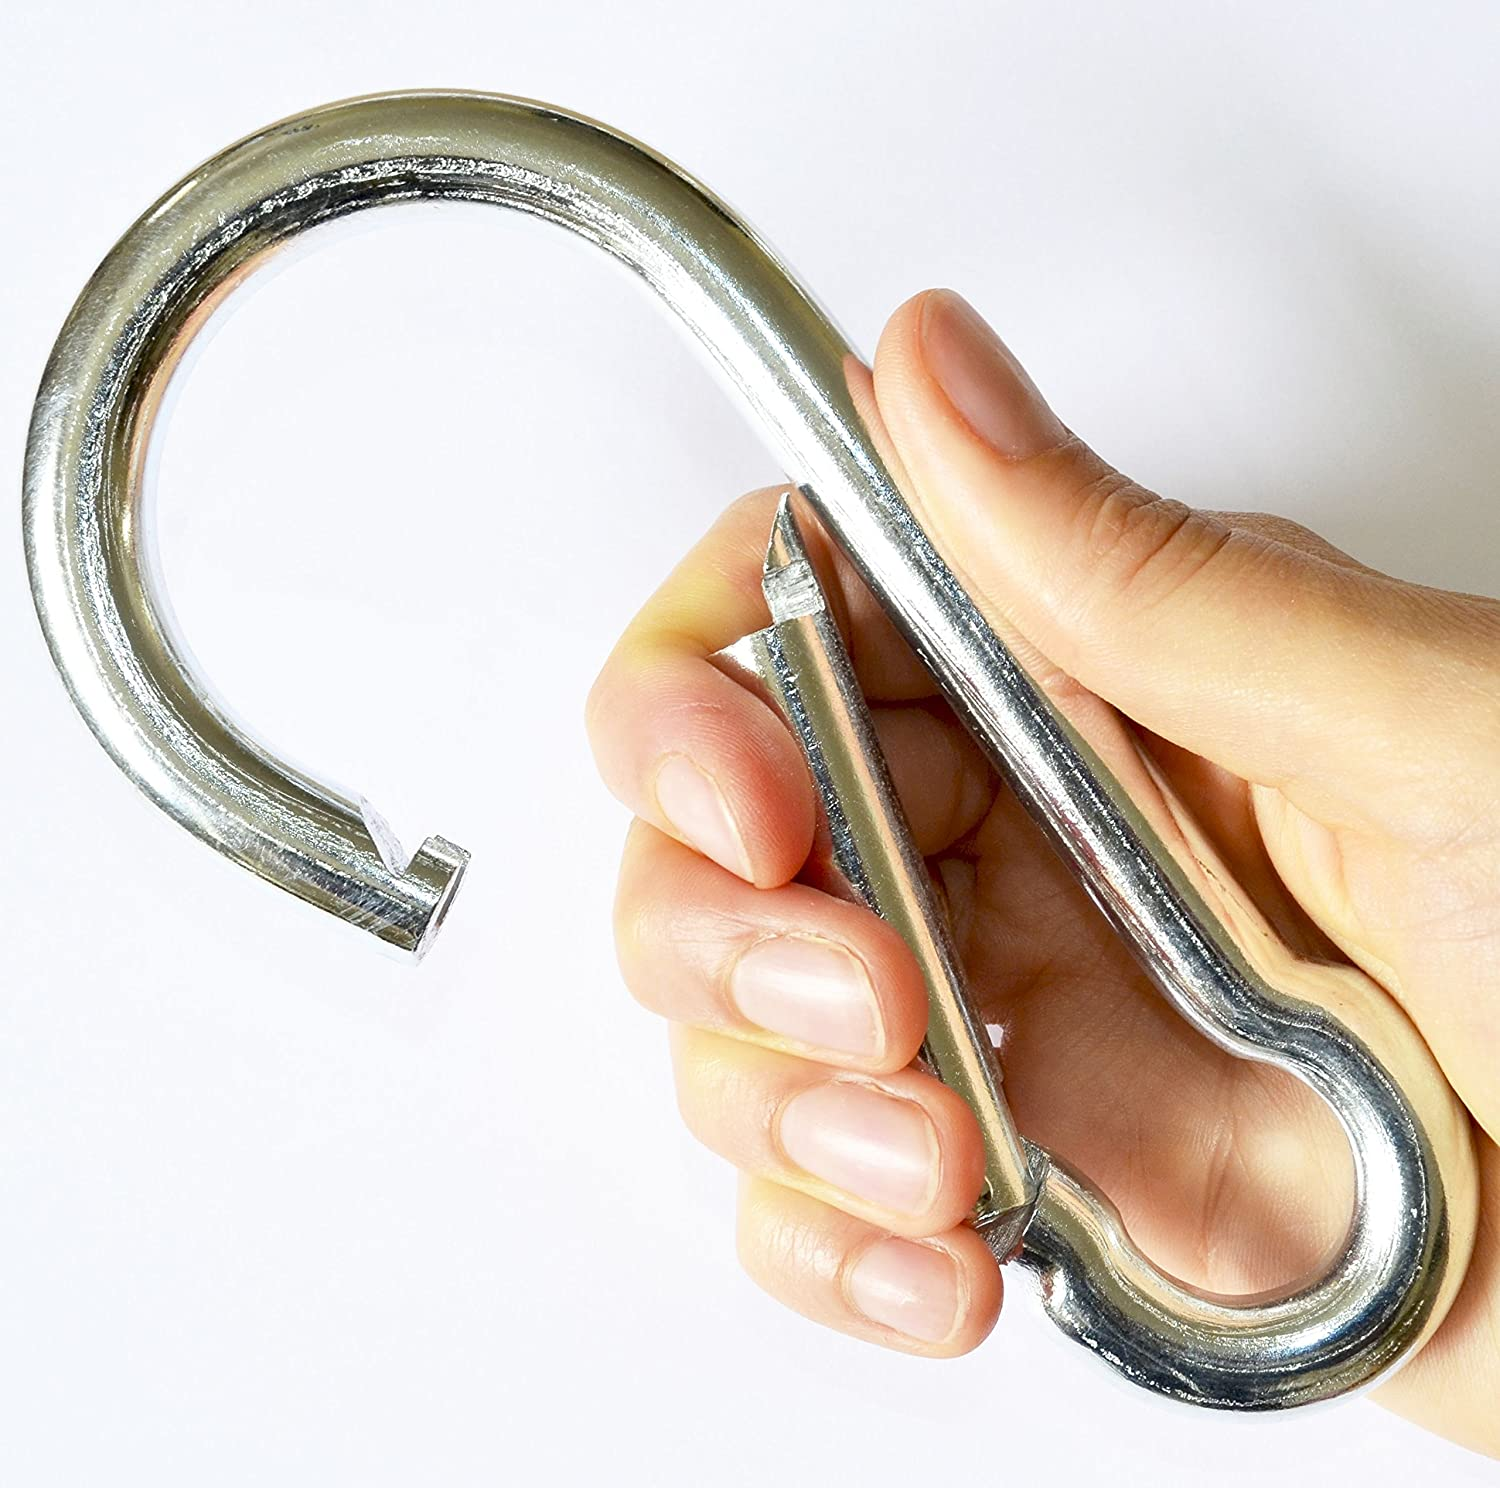 Simply the Best LARGE HARDWARE Carabiner SNAP HOOK Clip ~ 13mm x 160mm Long ~ Working Load: 600kg ~ MEGA STRONG for Sporting Activities and Heavy Duty Jobs